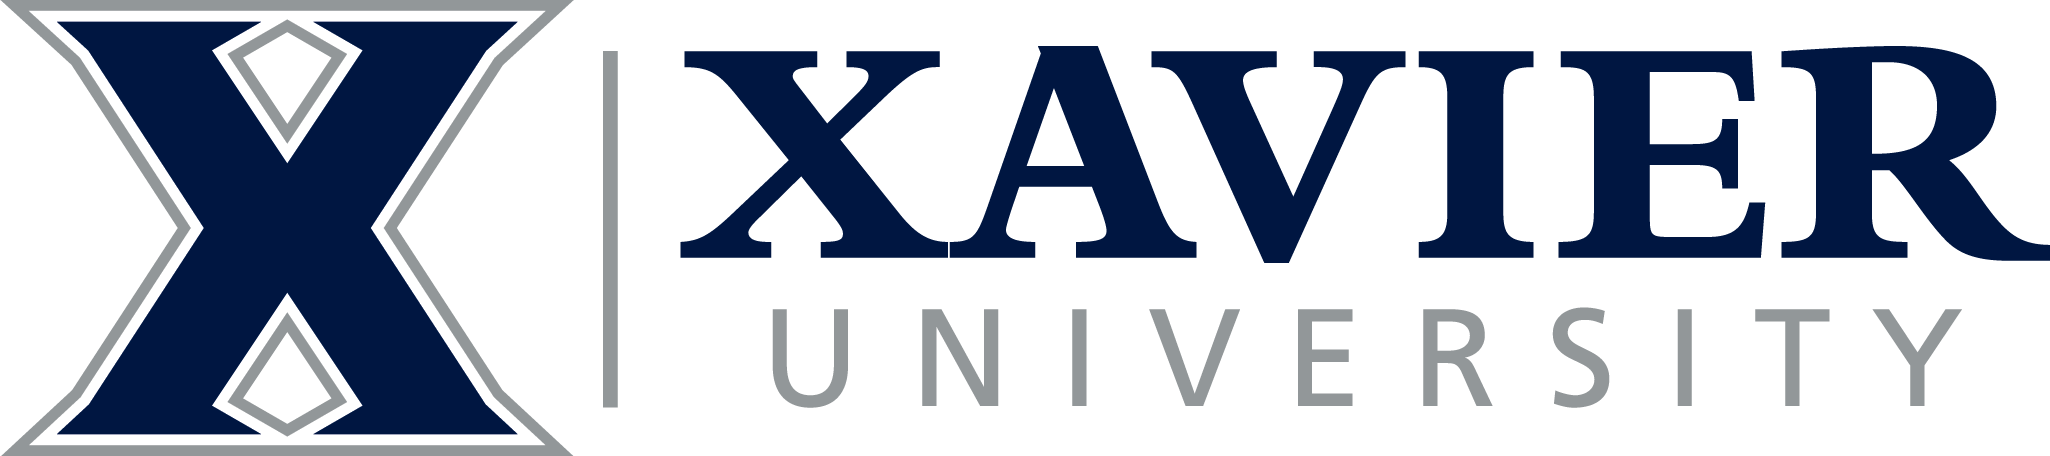 Xavier University Footer Logo